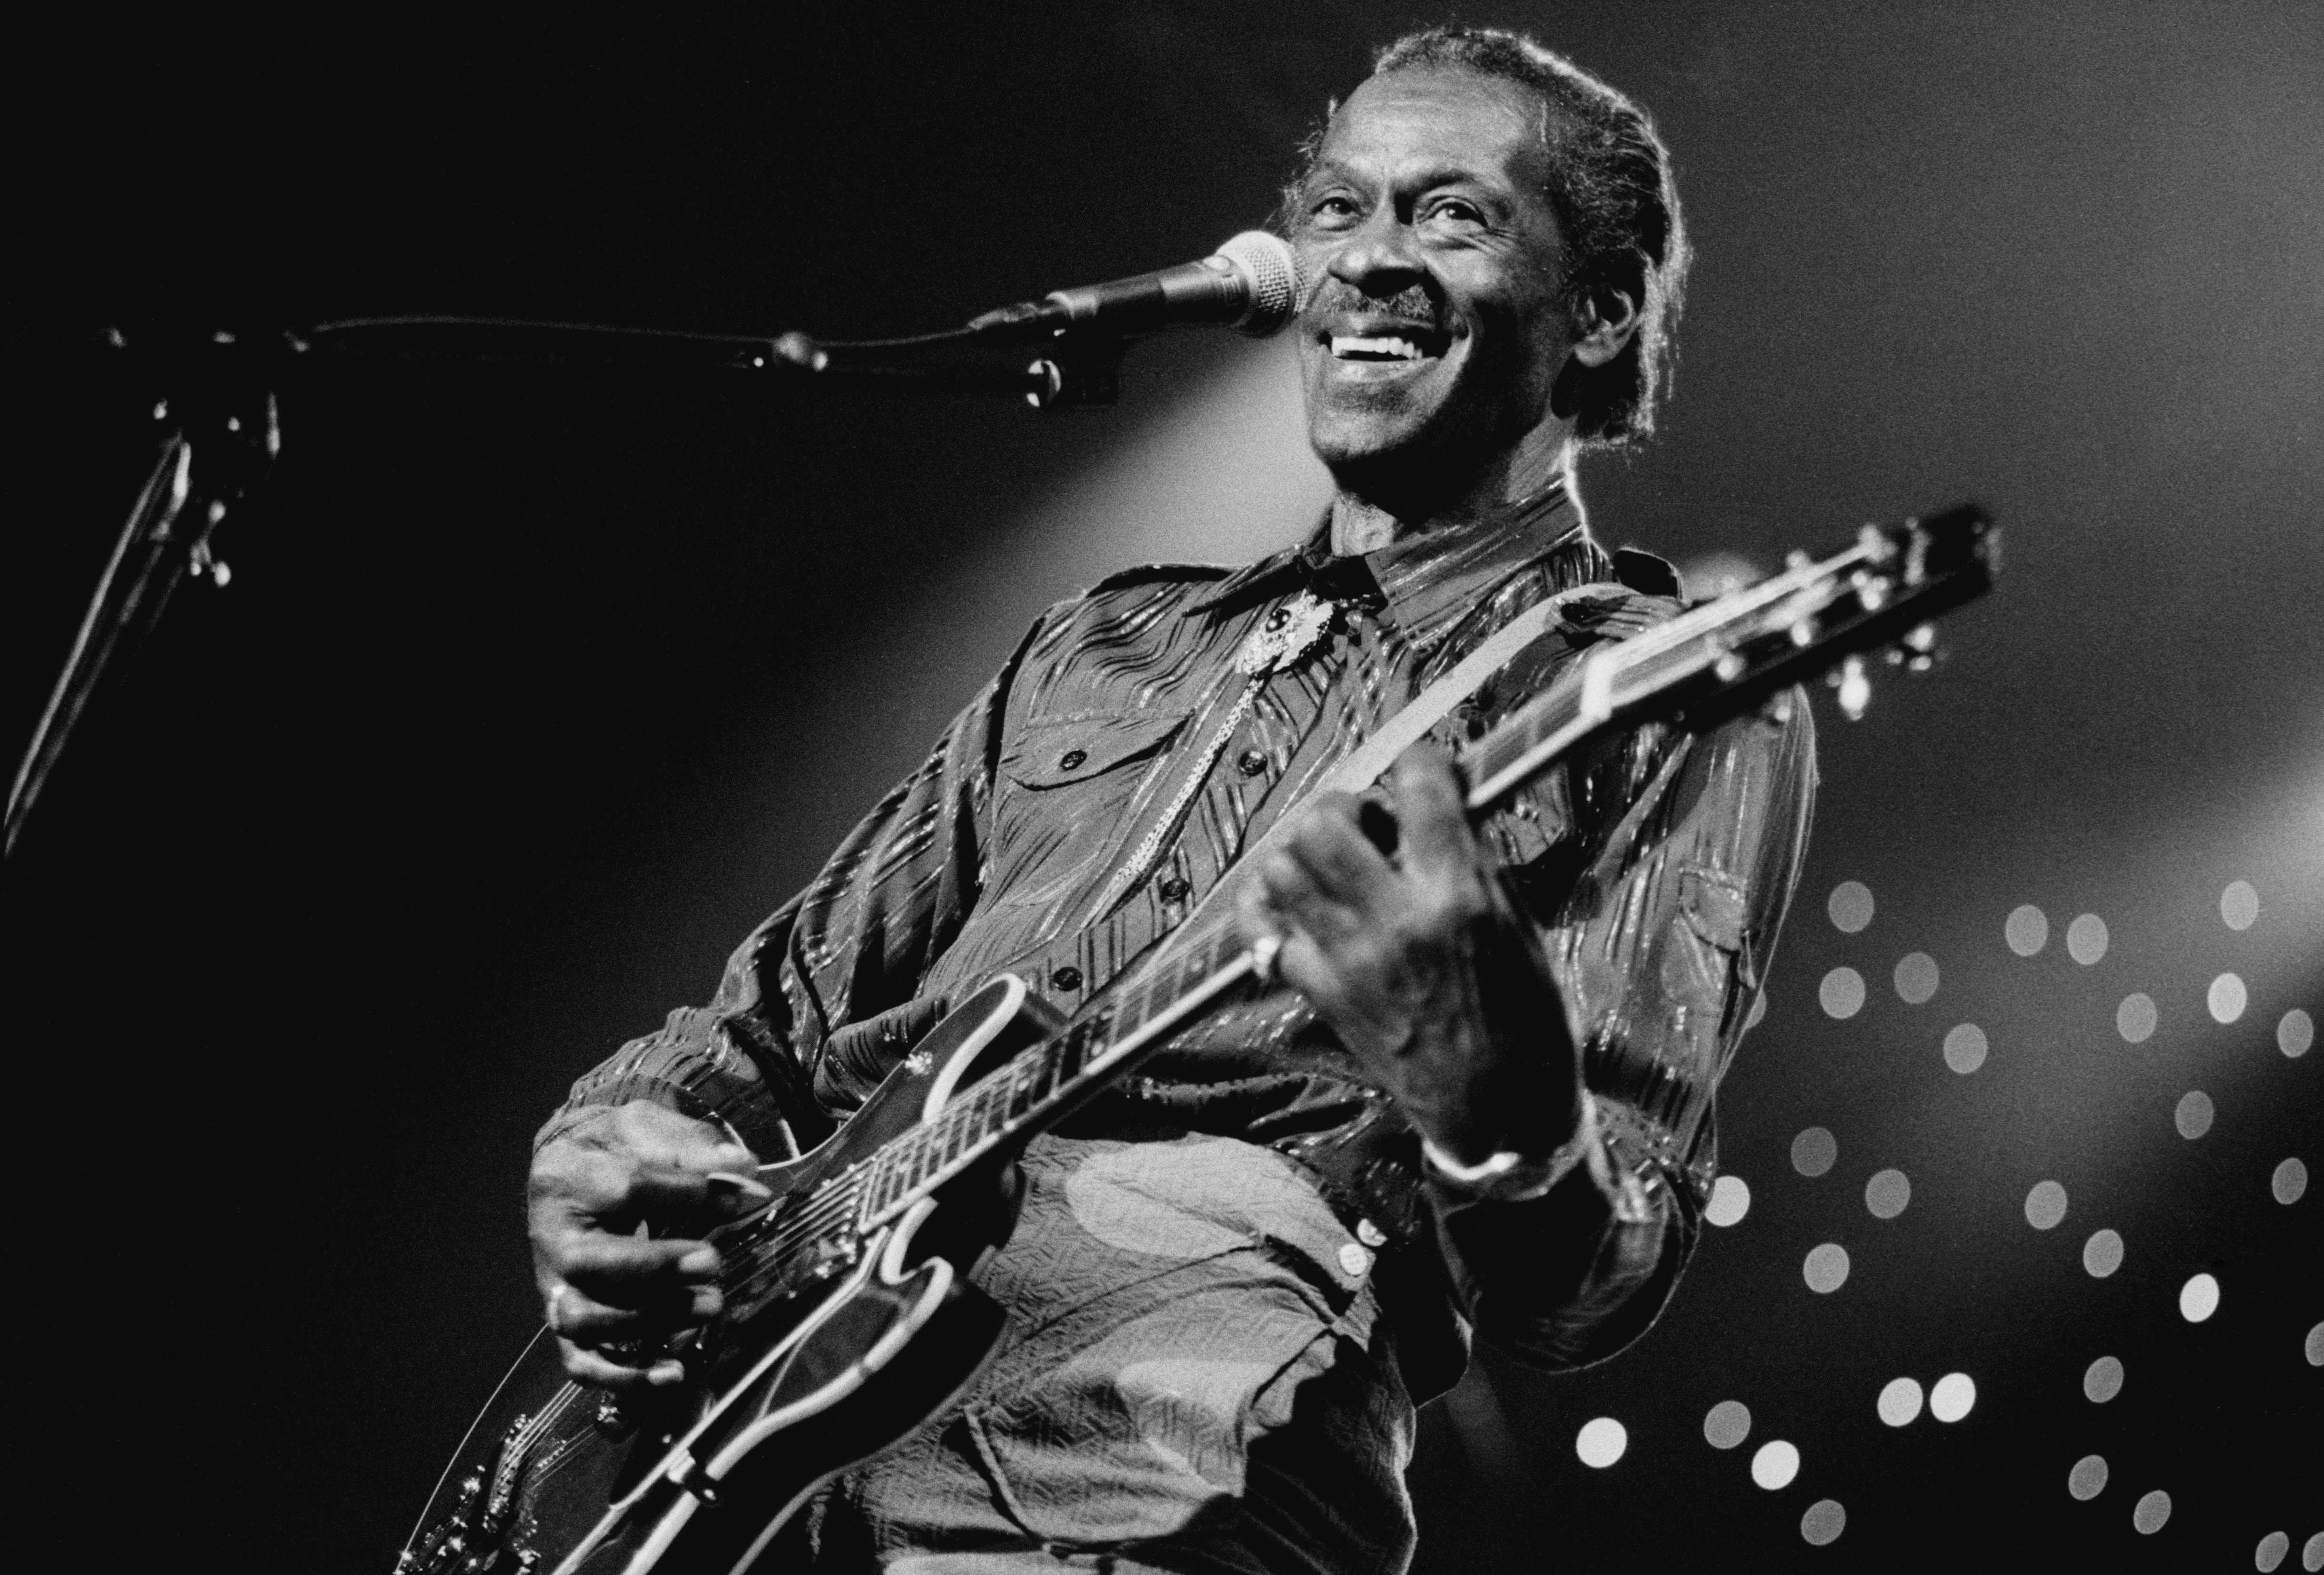 Without Chuck Berry, these 10 famous rock songs would not